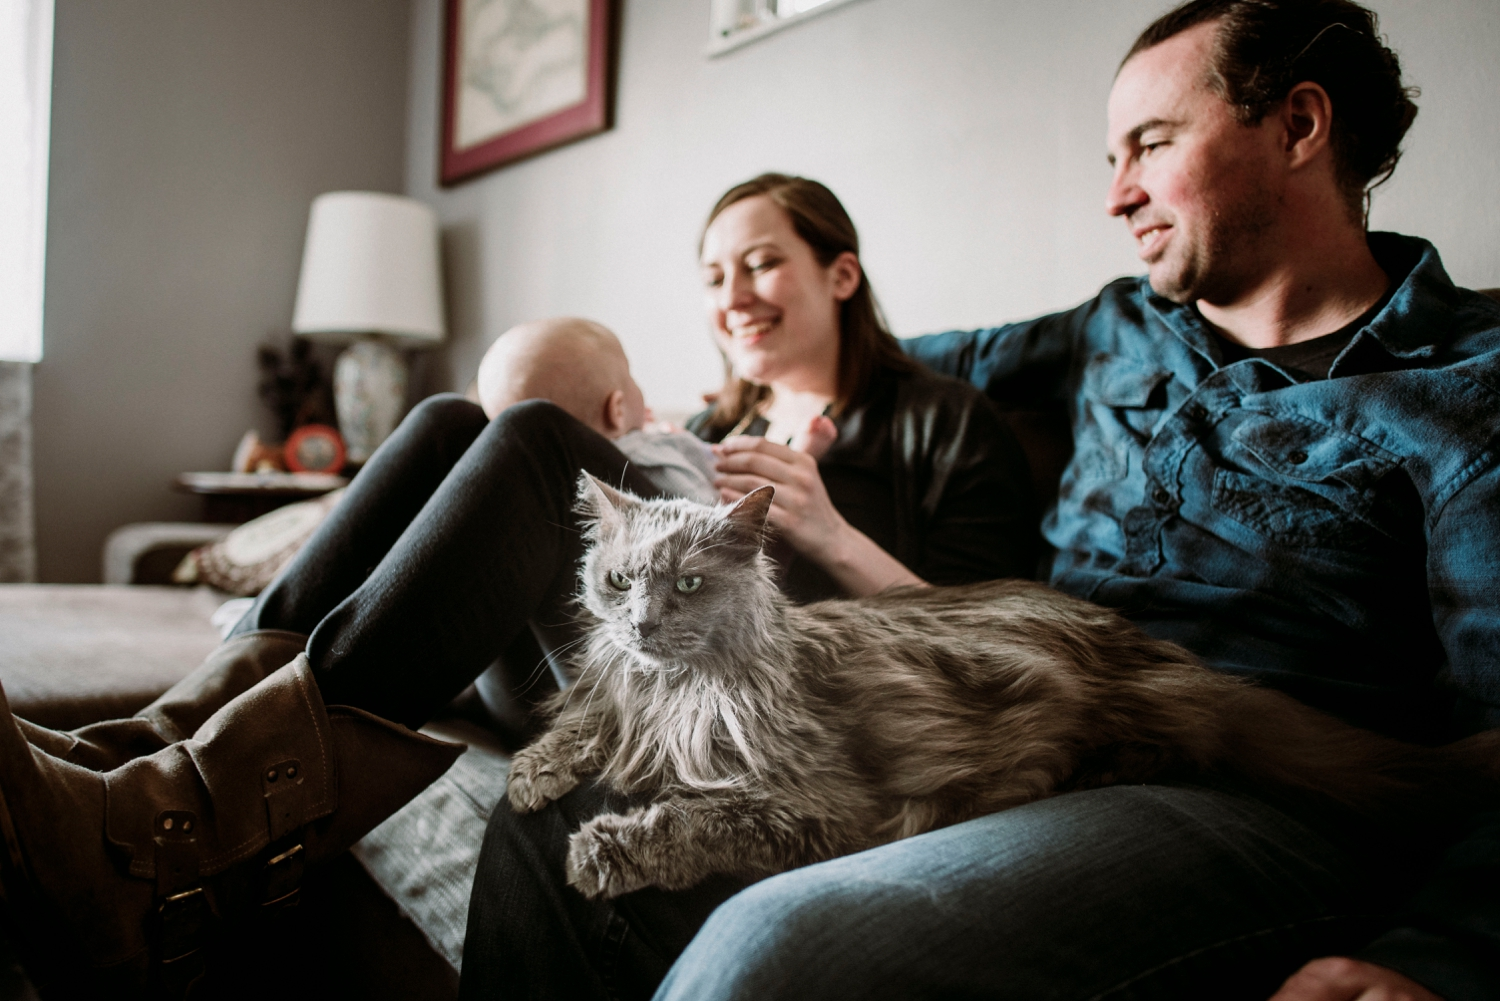 Family session with cats